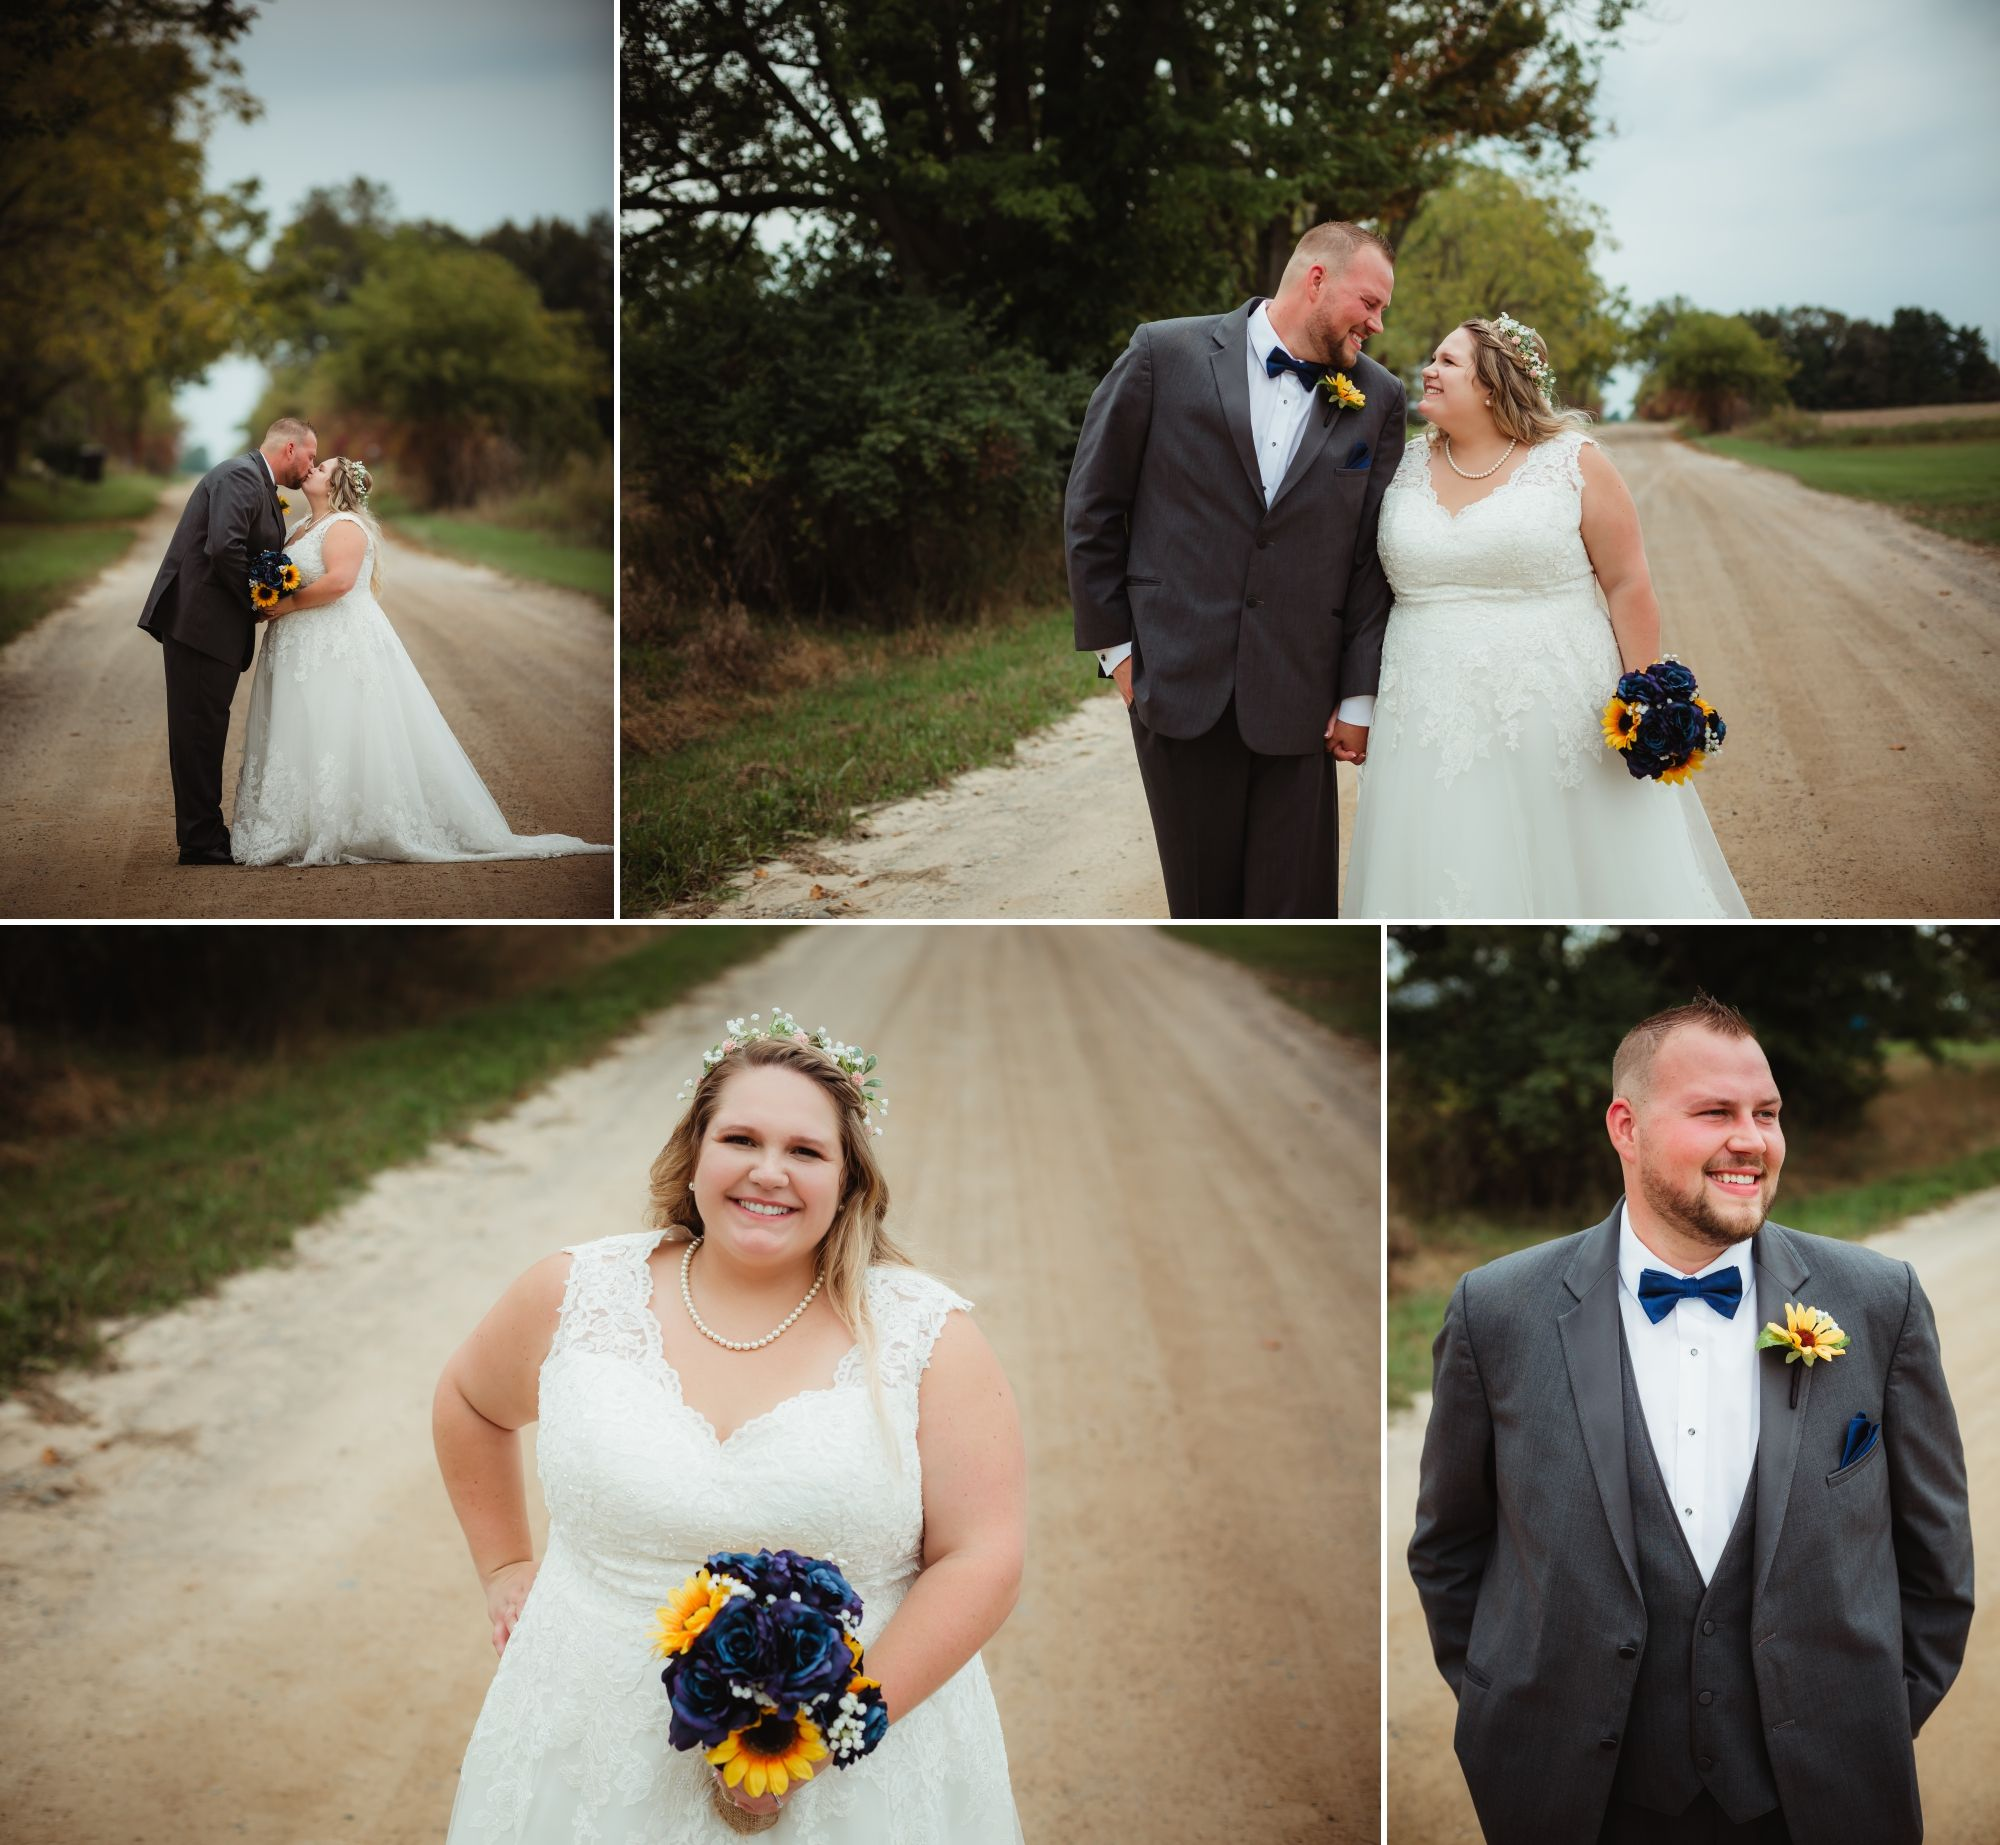 Collage of the bride and groom standing on a dirt road smiling.